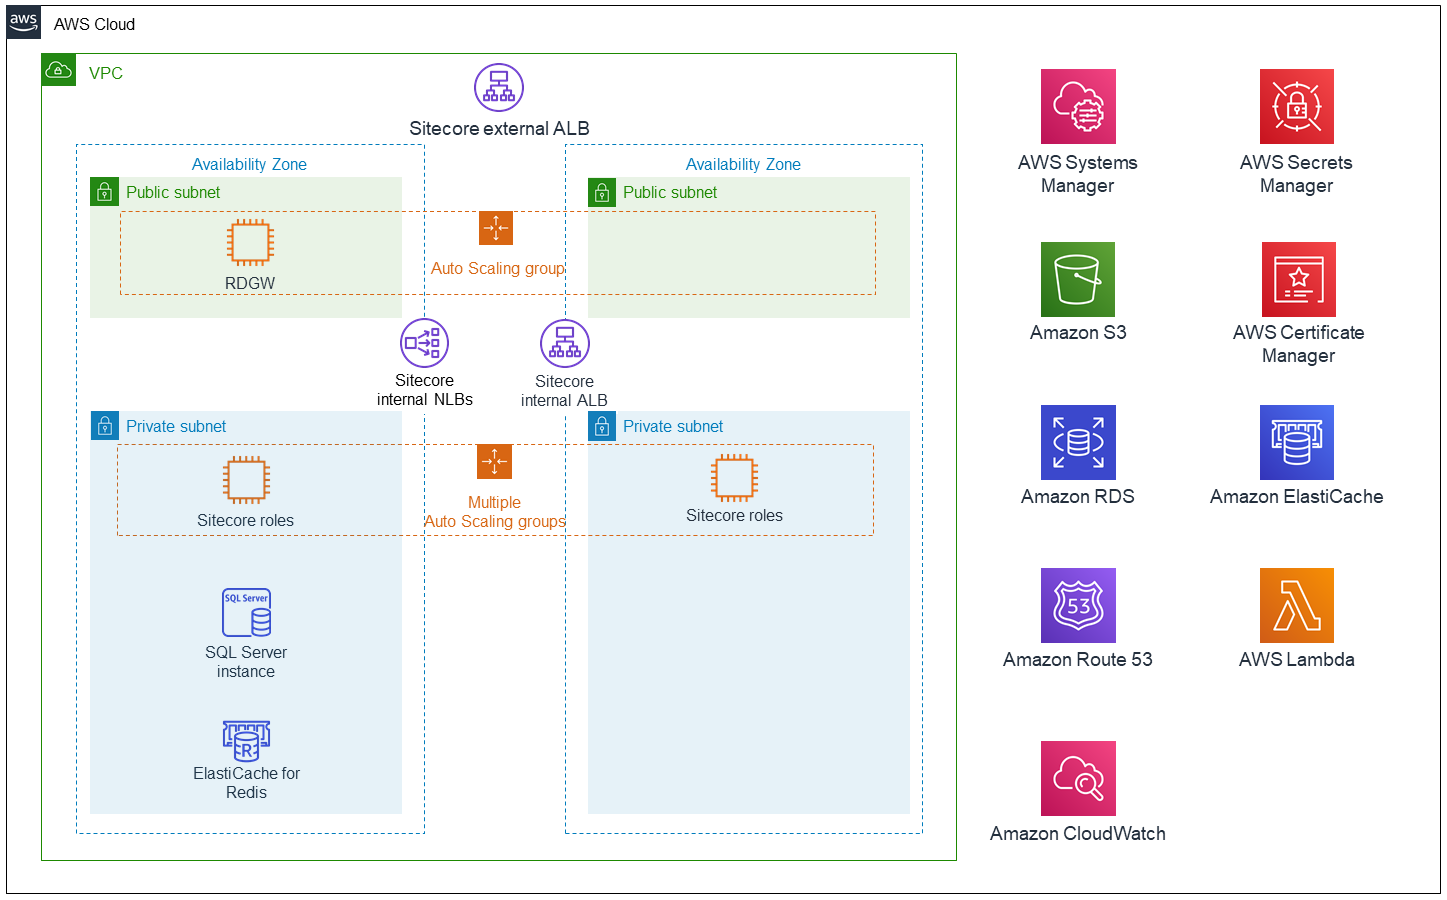 Sitecore XP 9.3 architecture diagram